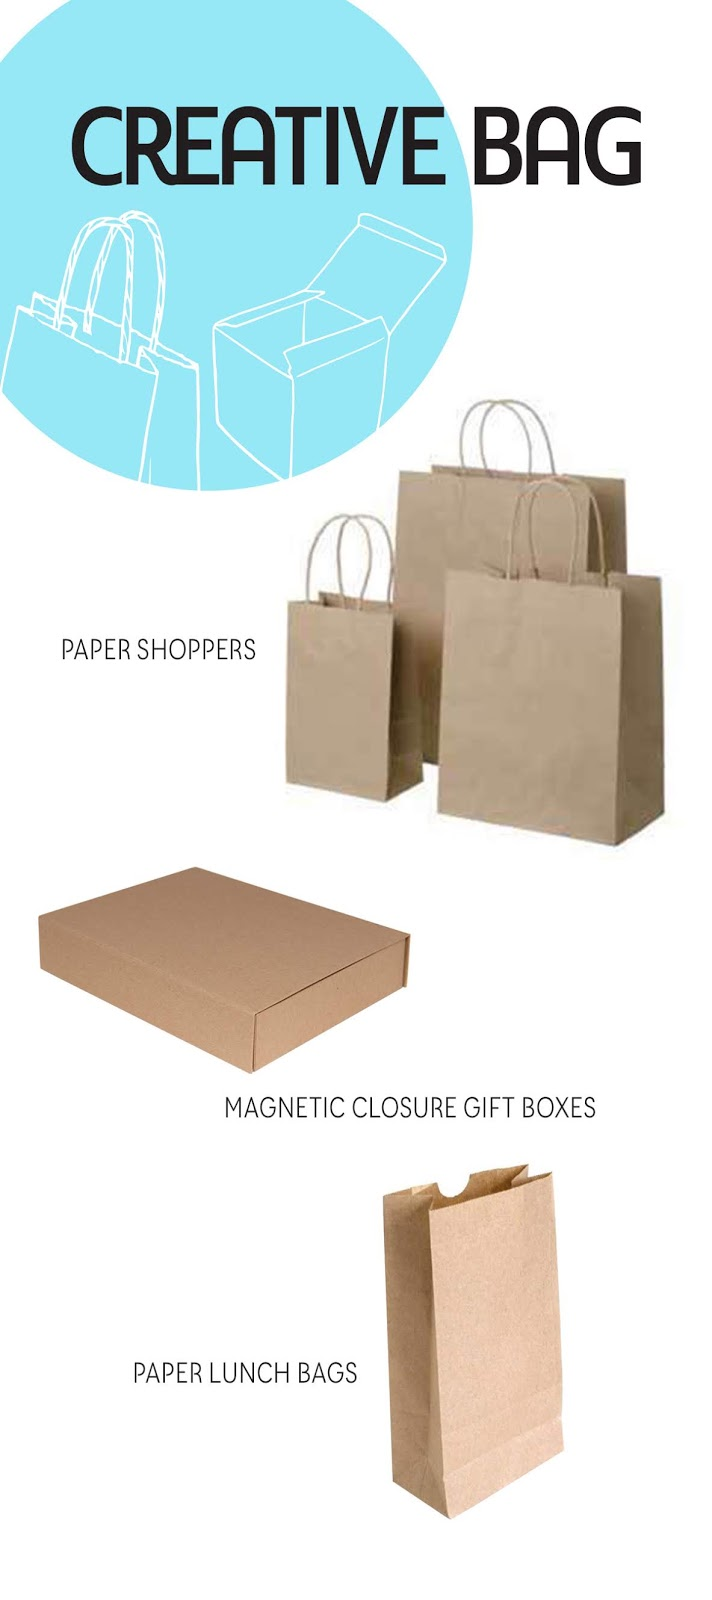 kraft bags and boxes from Creative Bag | creativebag.com